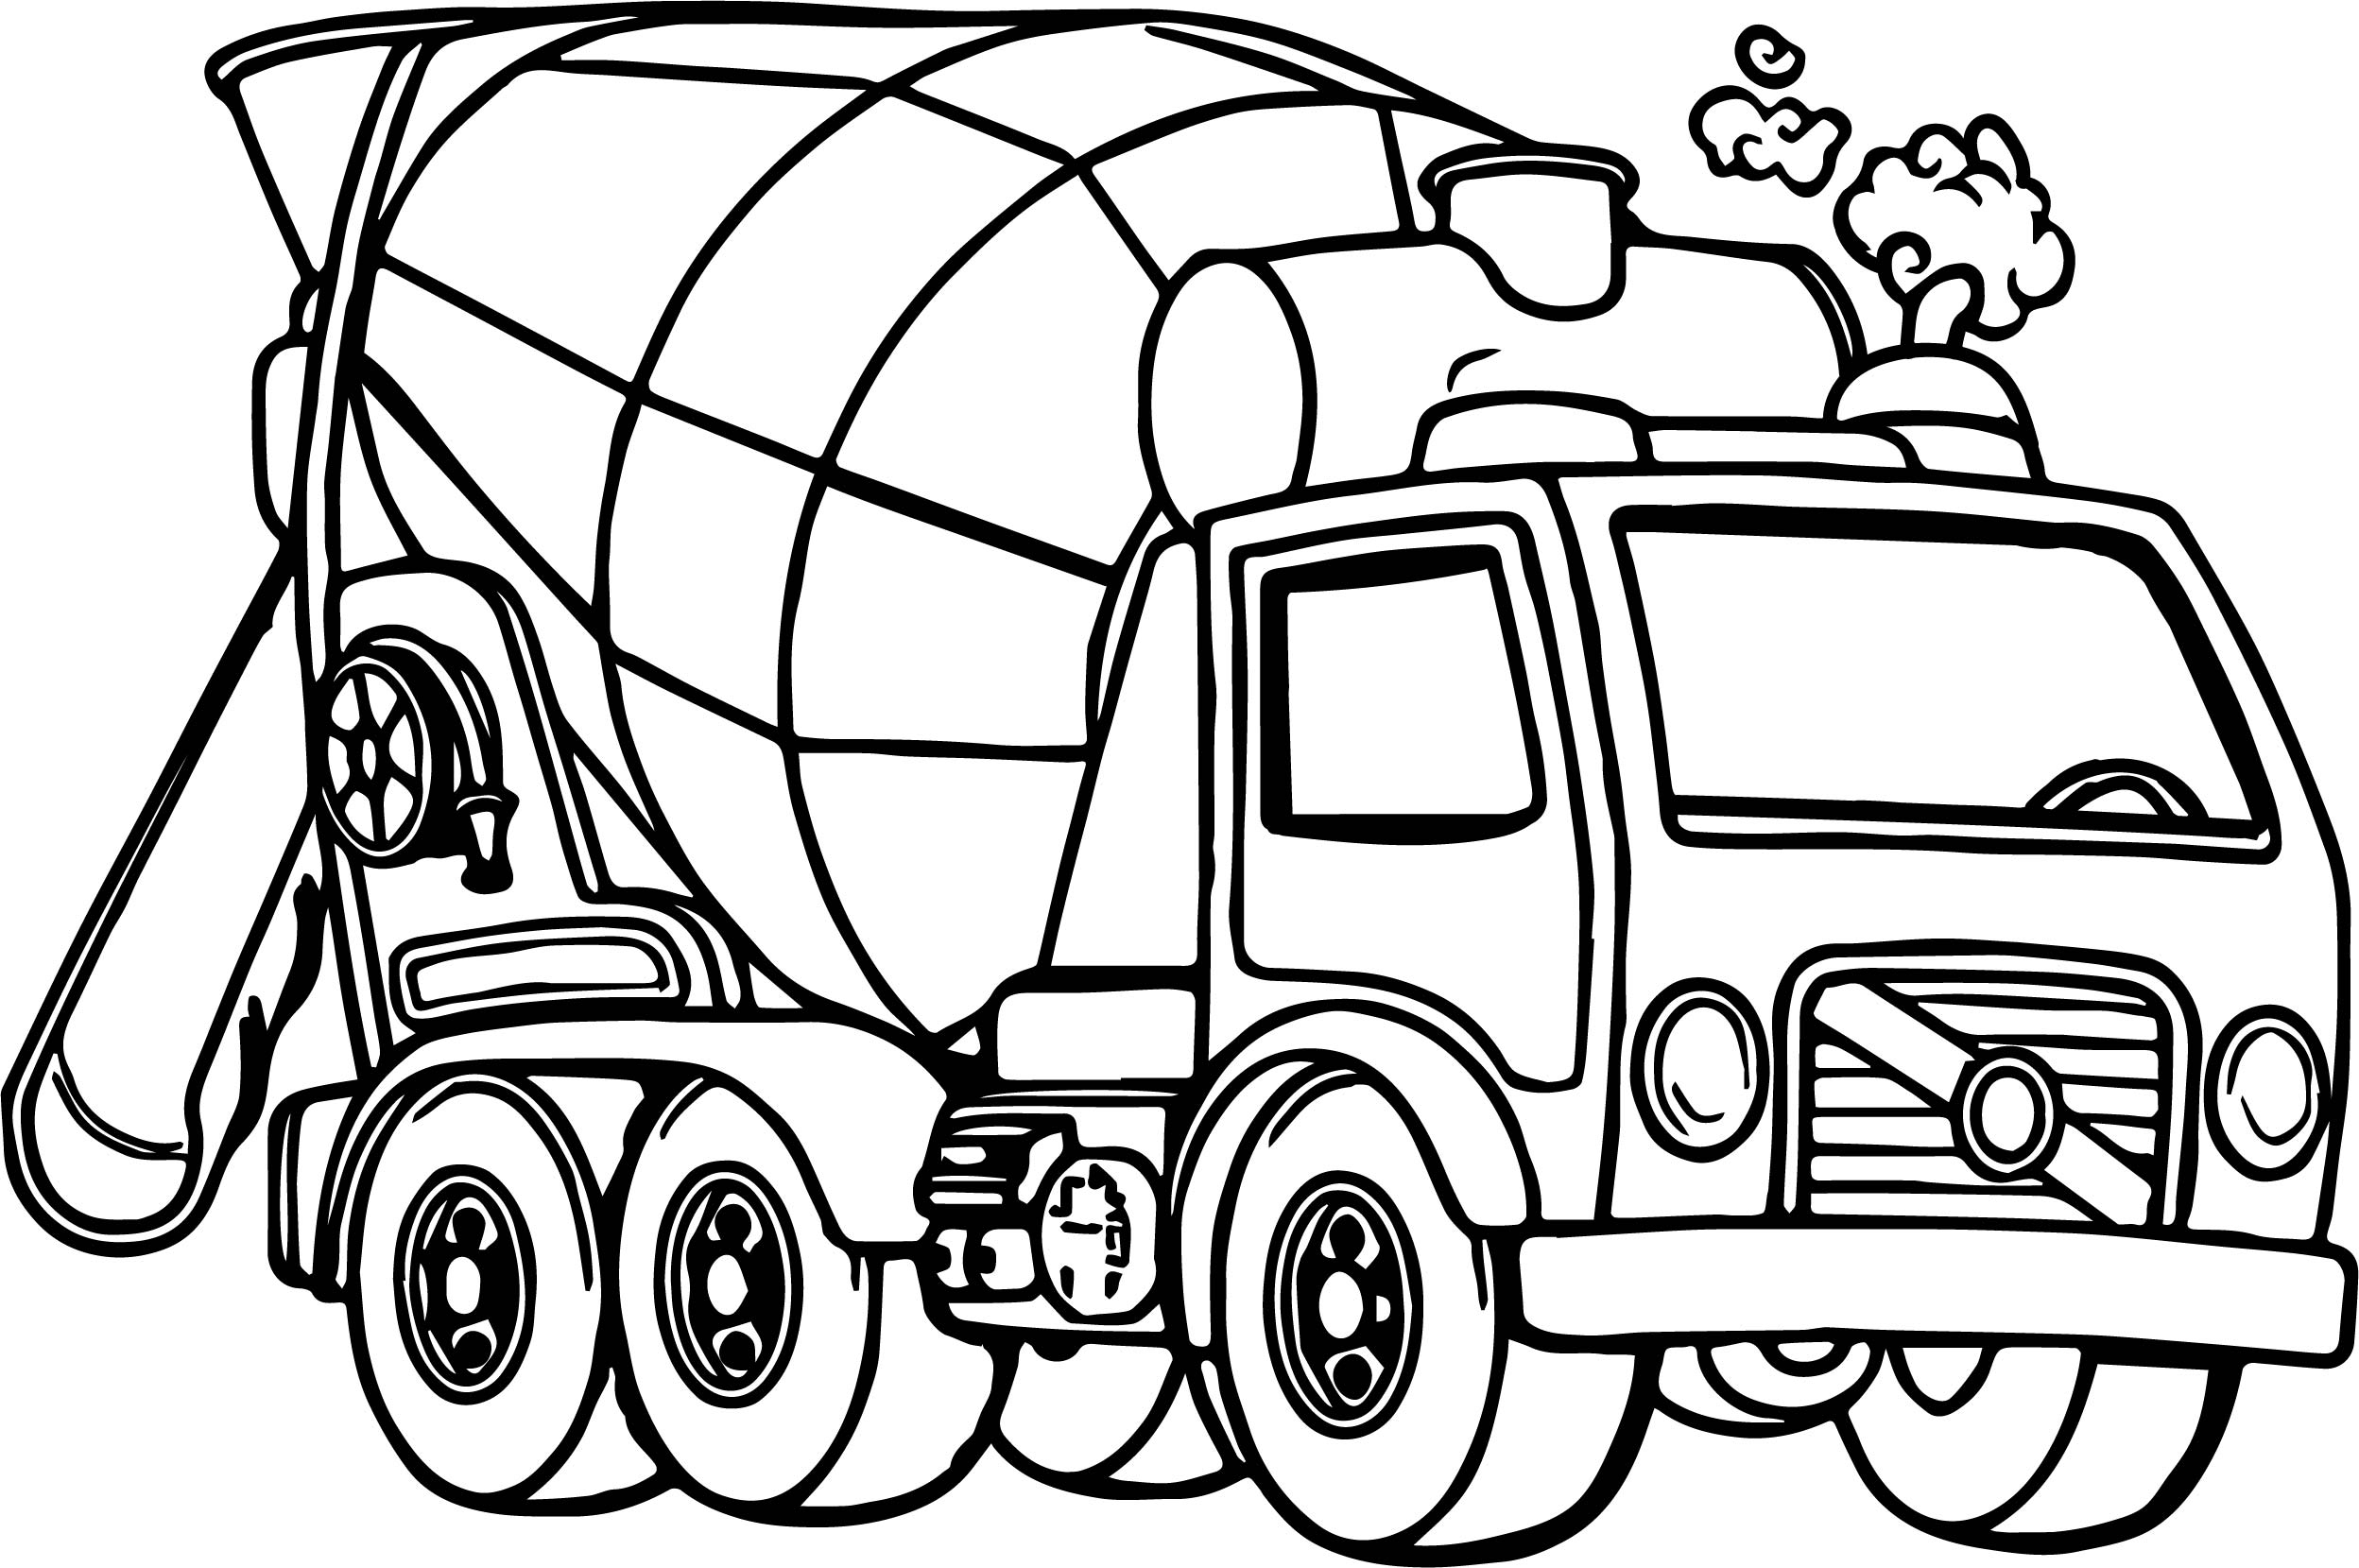 truck coloring pages to print cement mixer truck coloring page free printable coloring print pages to truck coloring